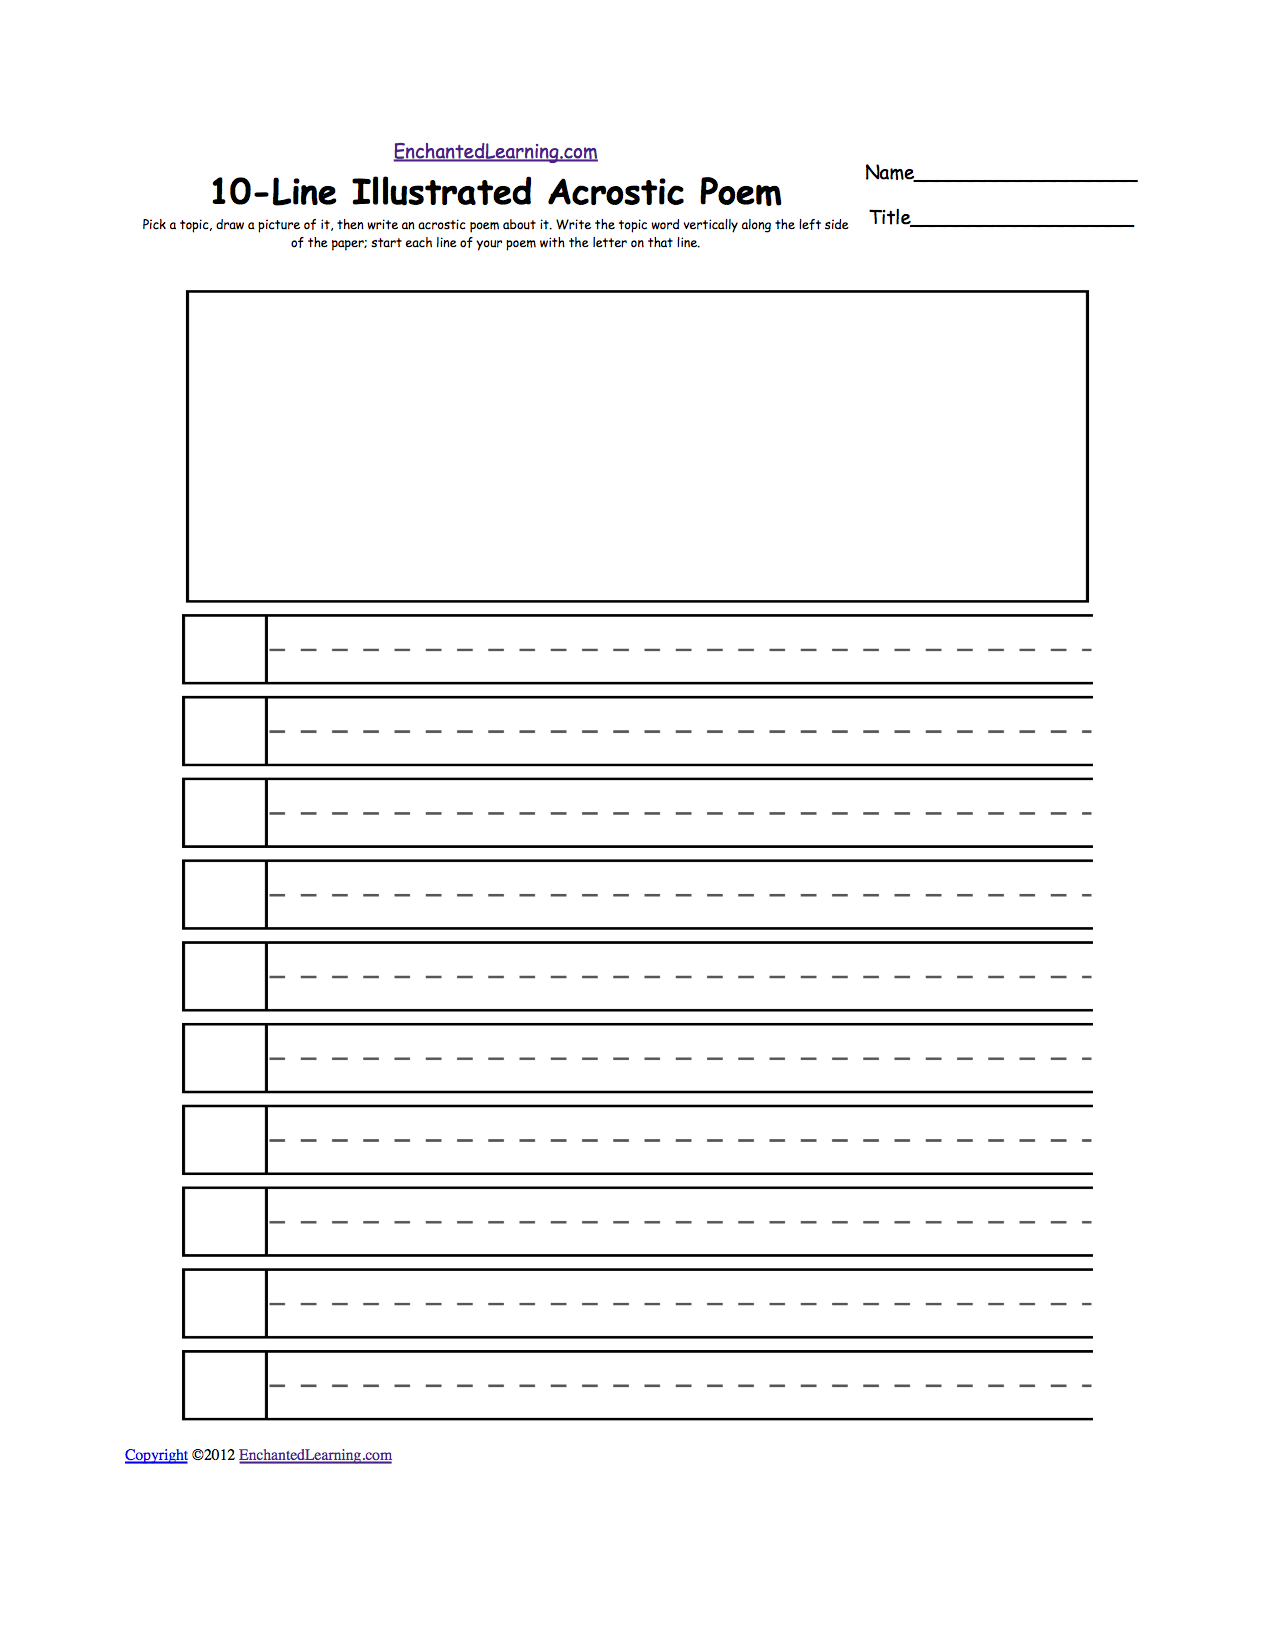 Worksheets Dotted Line Page blank illustrated acrostic poem worksheets handwriting lines pick a topic draw picture of it then write an about on dotted the word vertically along left